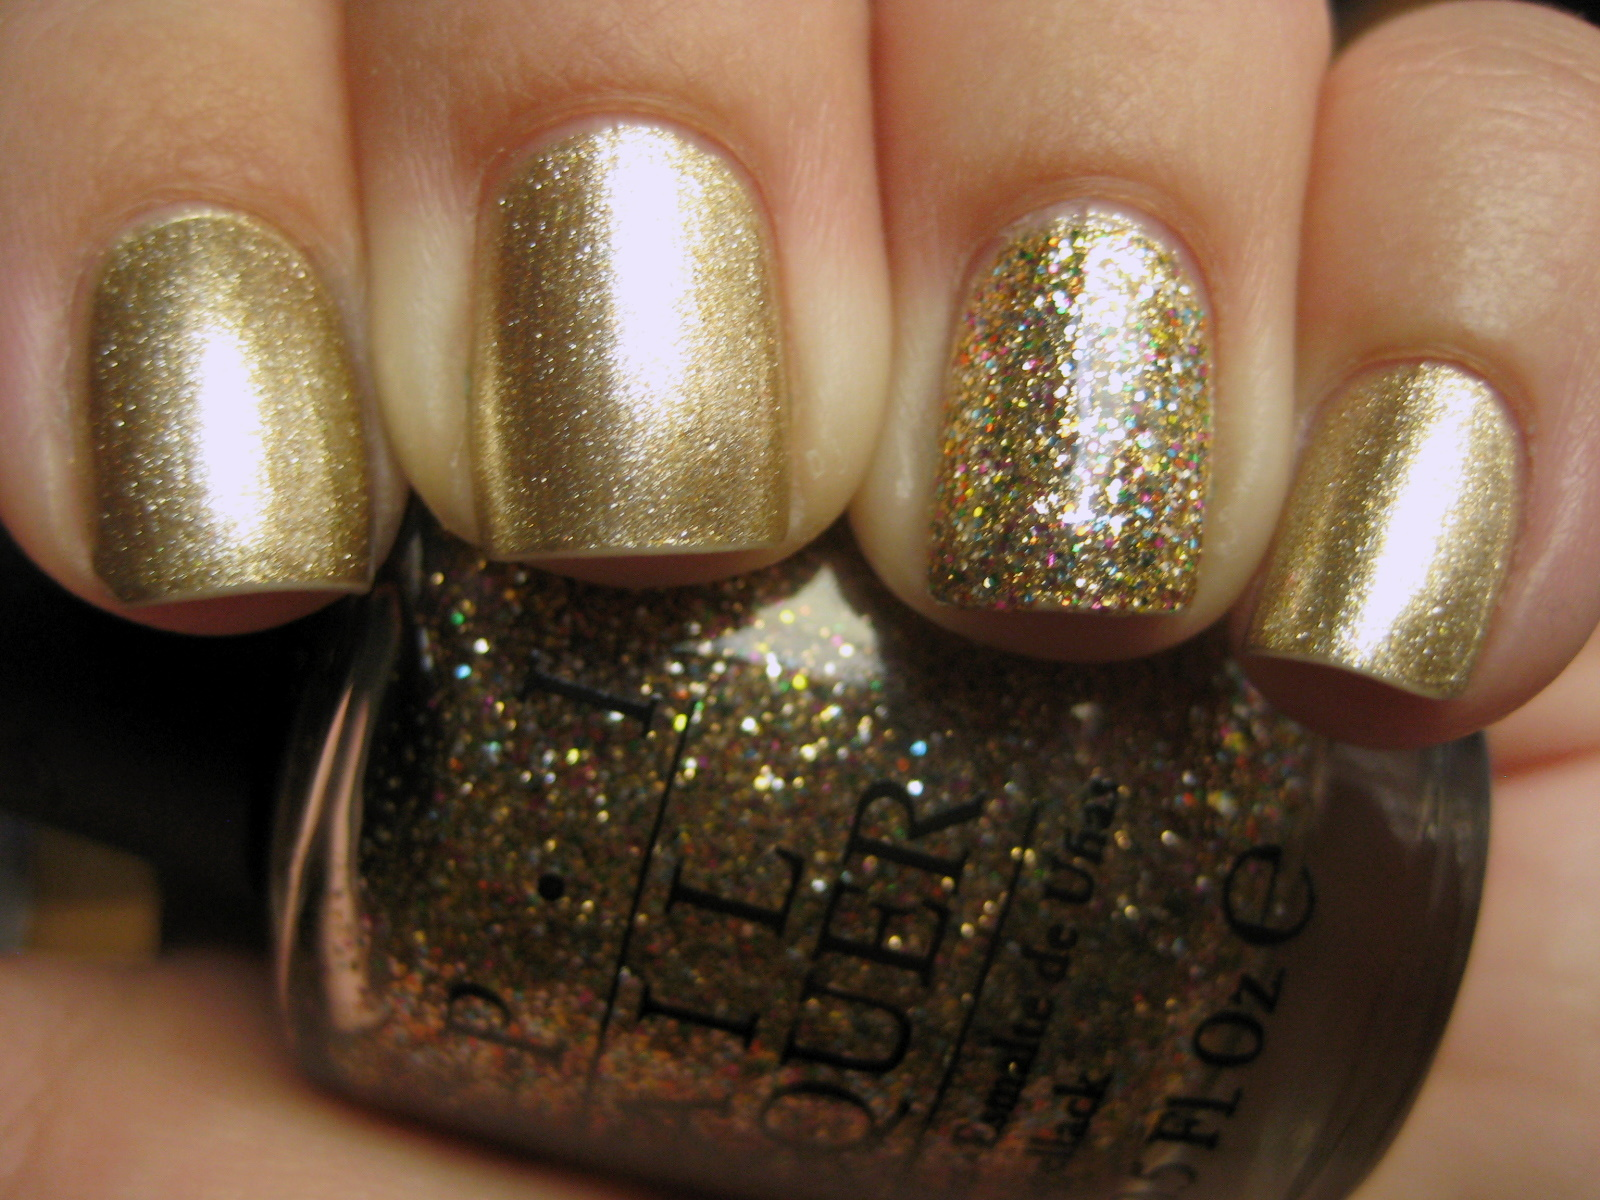 Goose's Glitter: OPI Glitzerland and Bring on the Bling